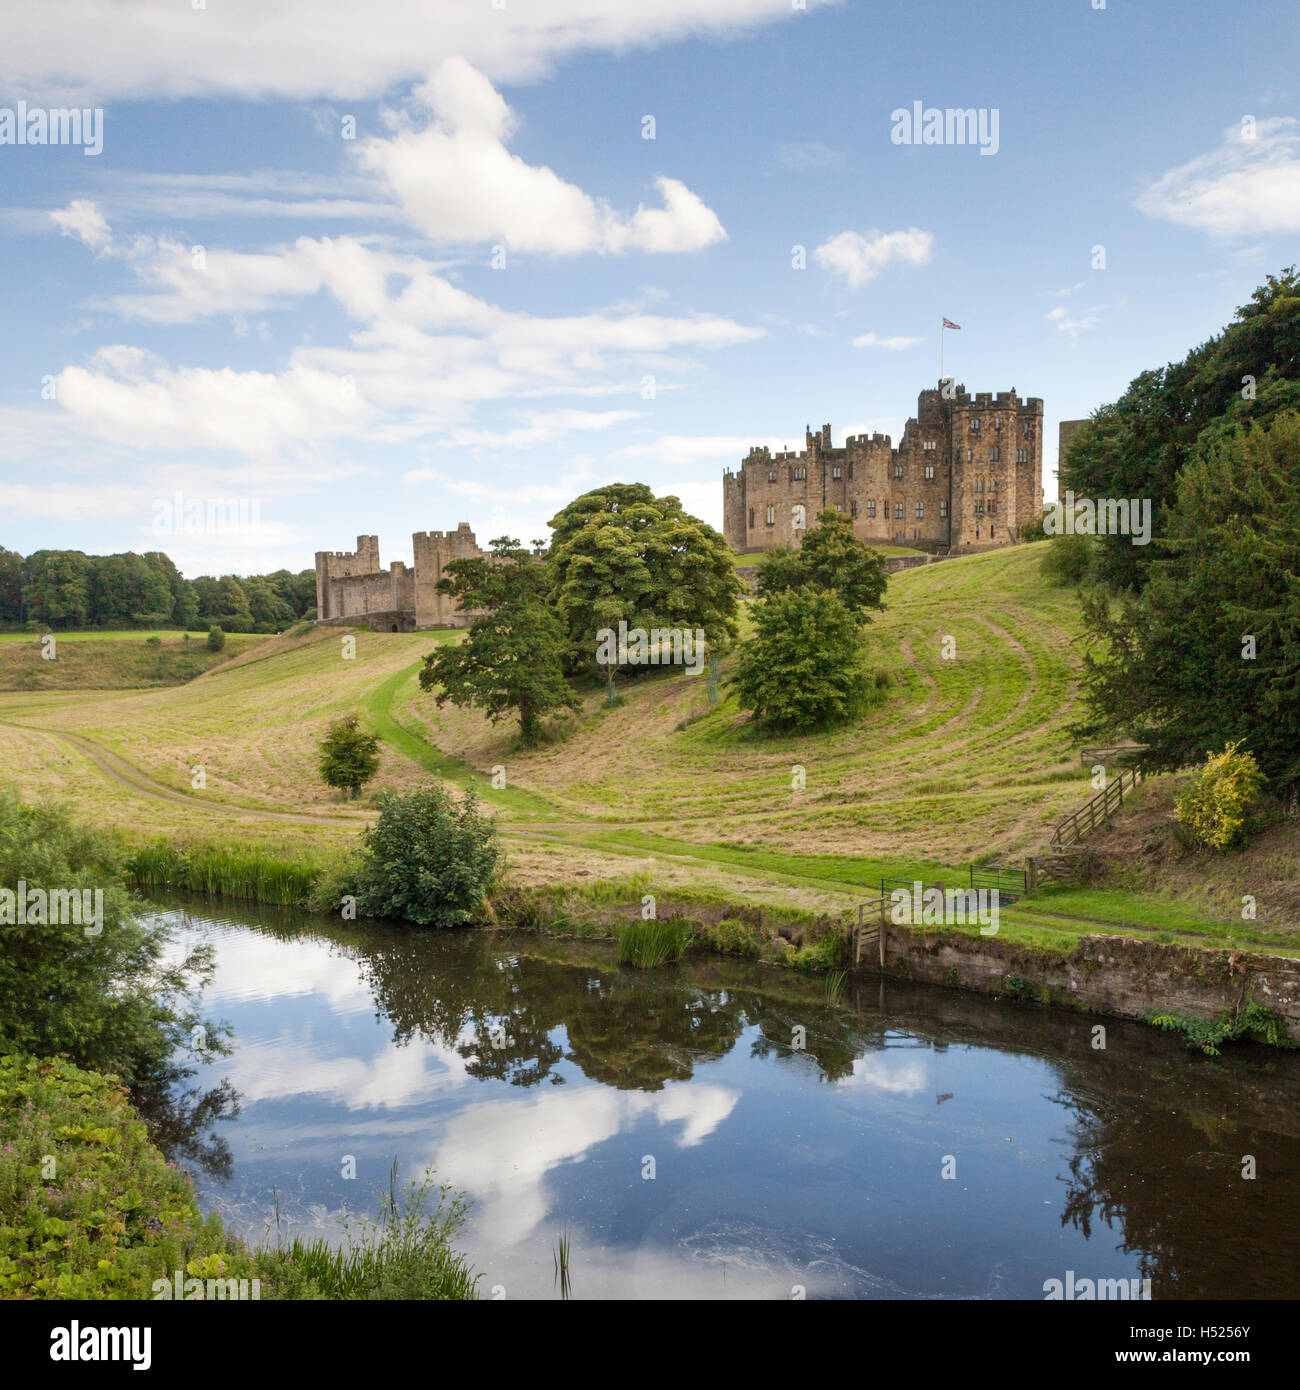 Alnwick Castle, home of the Duke and Duchess of Northumberland, film location for Harry Potter, River Aln, Summer's - Stock Image